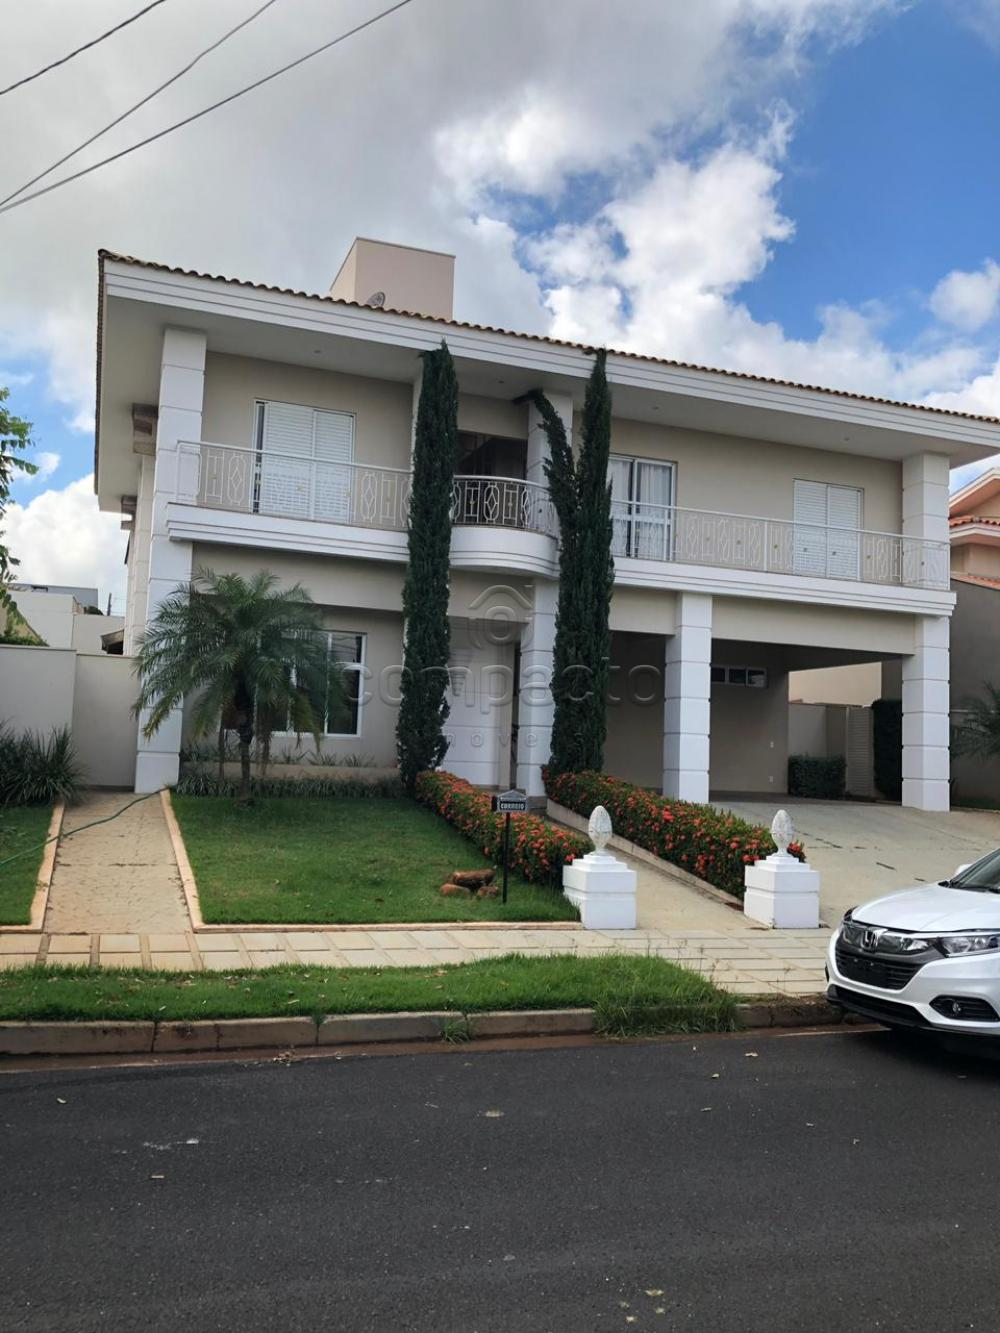 Sao Jose do Rio Preto Casa Venda R$1.500.000,00 Condominio R$540,00 4 Dormitorios 3 Suites Area do terreno 600.00m2 Area construida 464.00m2